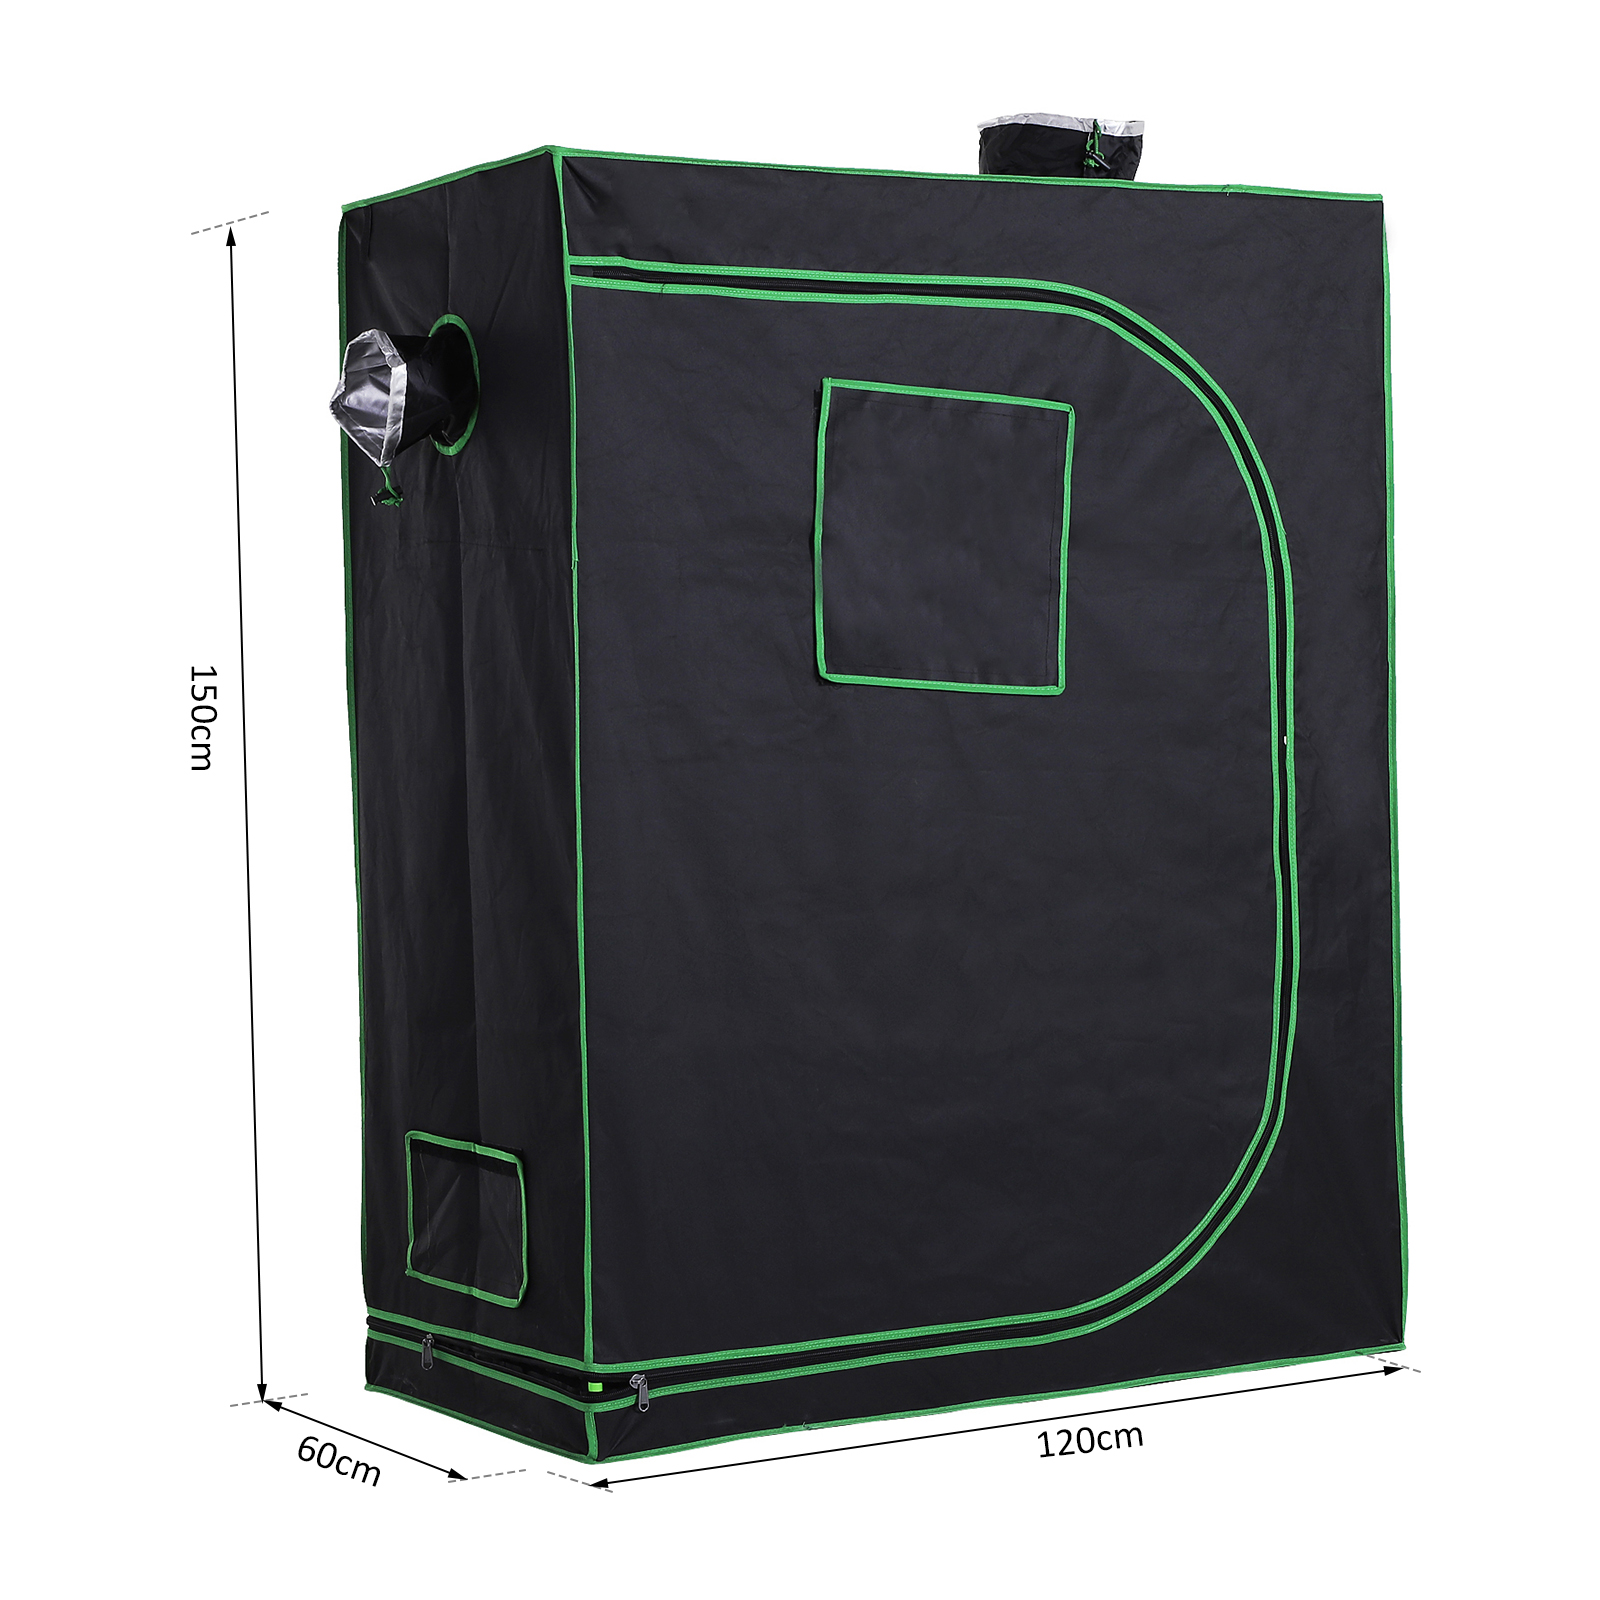 Hydroponic-Plant-Grow-Tent-Indoor-Obeservation-Window-Floor-Tray-Steel-Pole-600D thumbnail 3